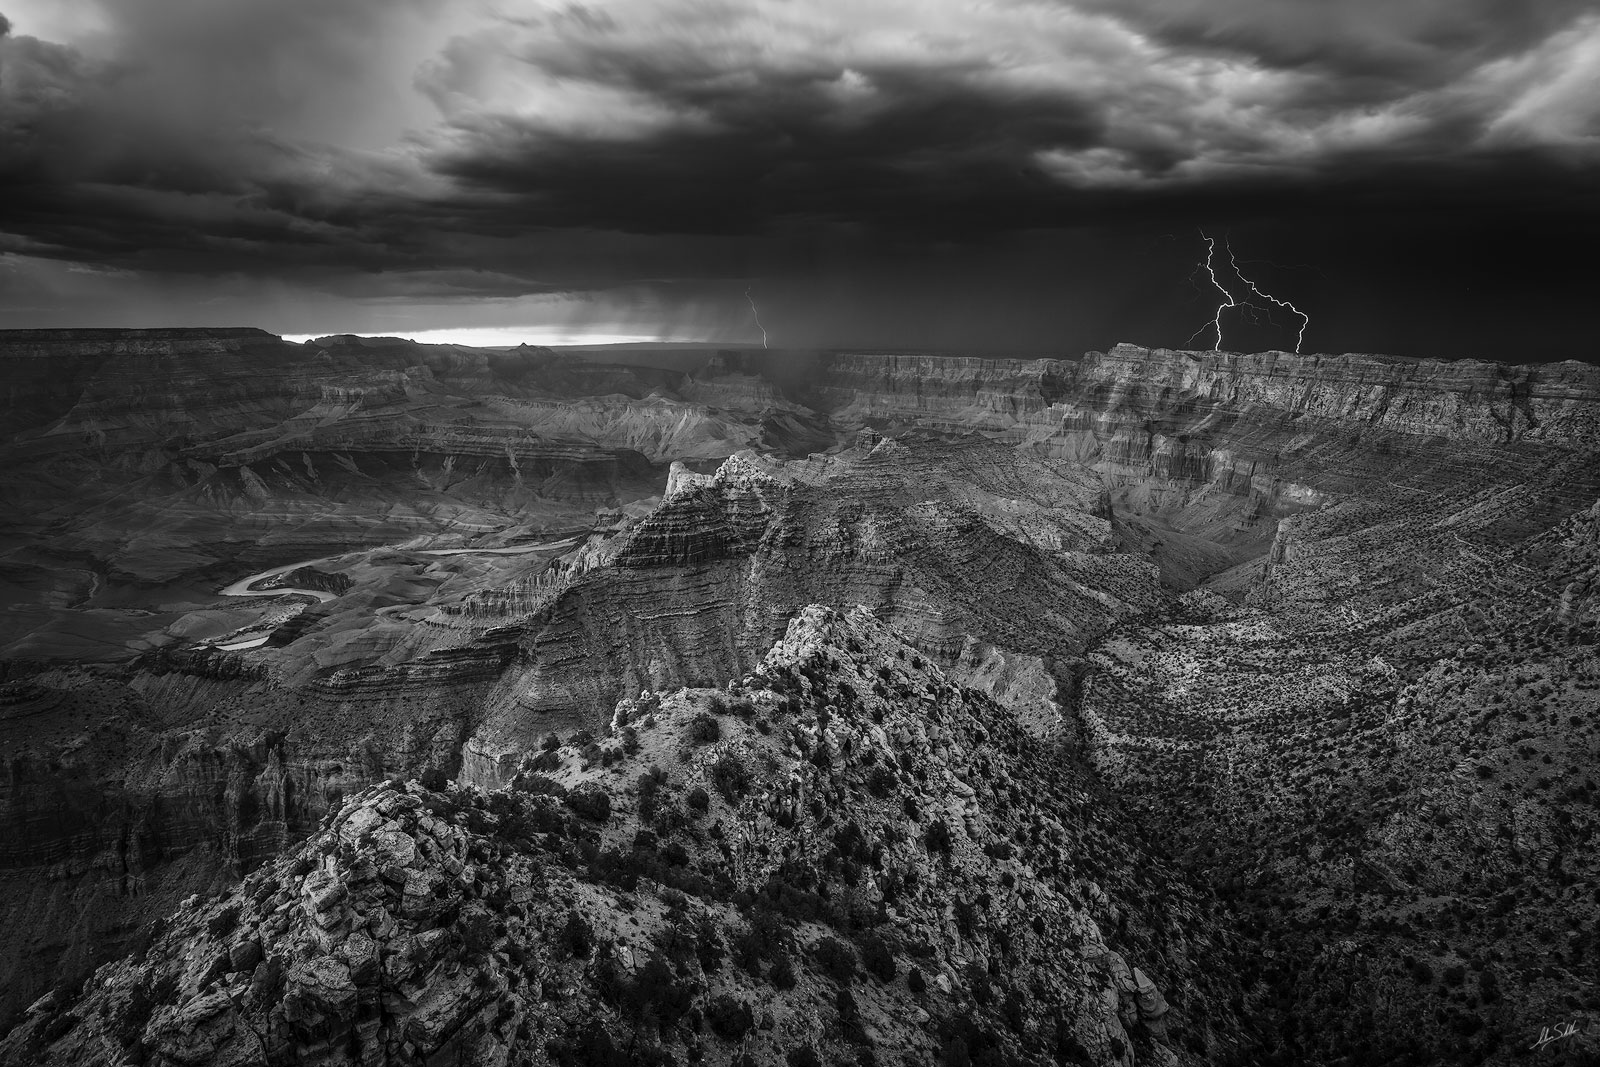 Lightning strikes the Painted Desert near the East Rim of the Grand Canyon. From Lipan Point on the South Rim of Grand Canyon...